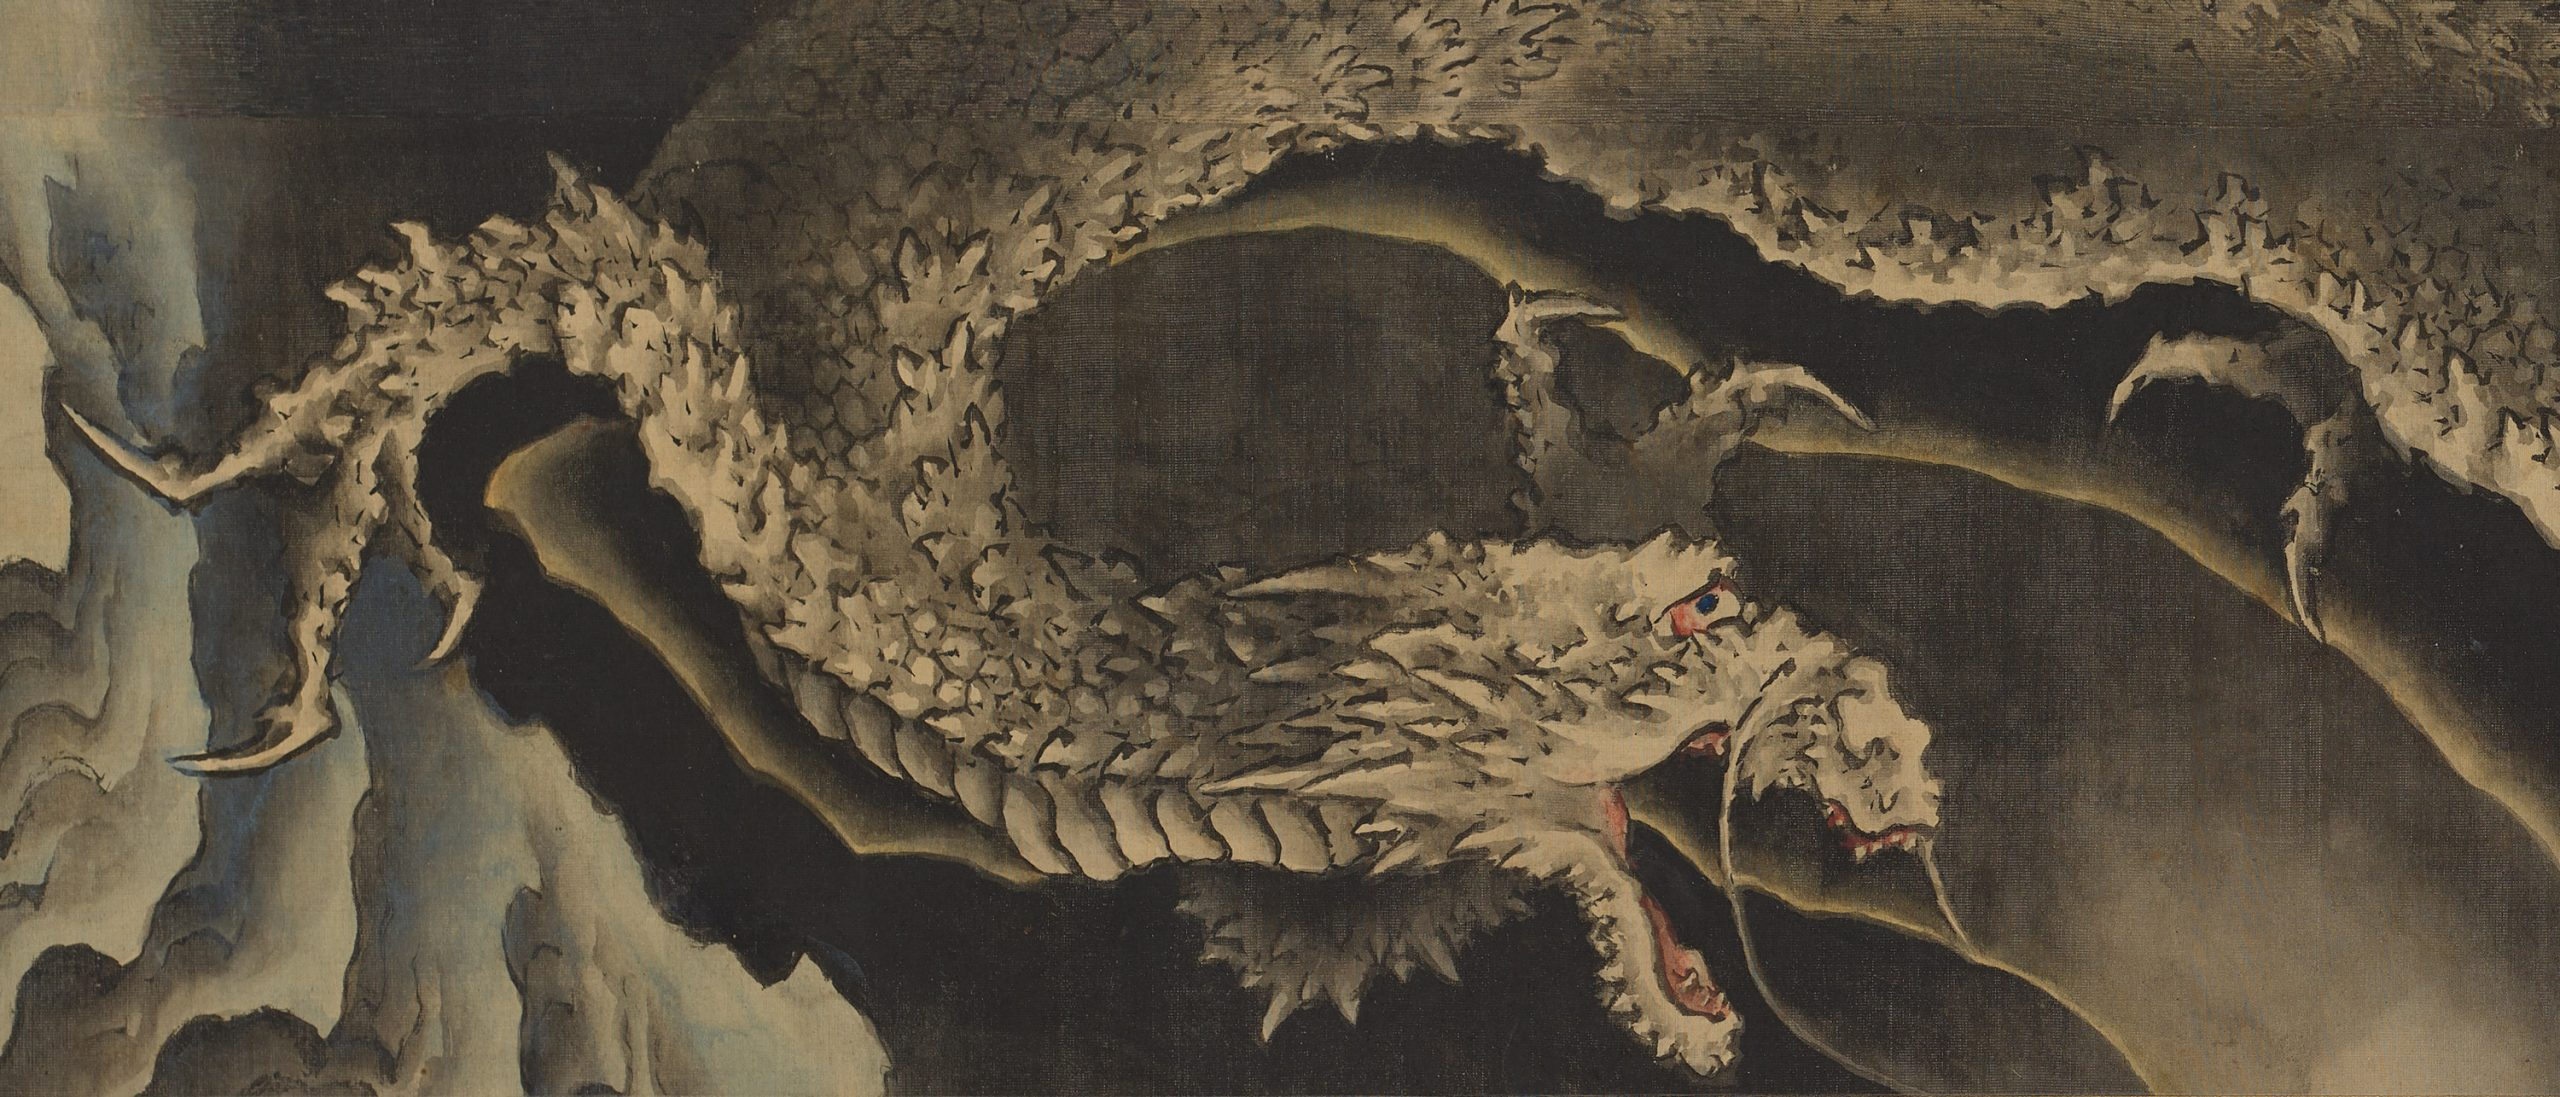 detail from a hokusai painting of a dragon, rotated to appear horizontal, of a dragon in black ink on a tan background